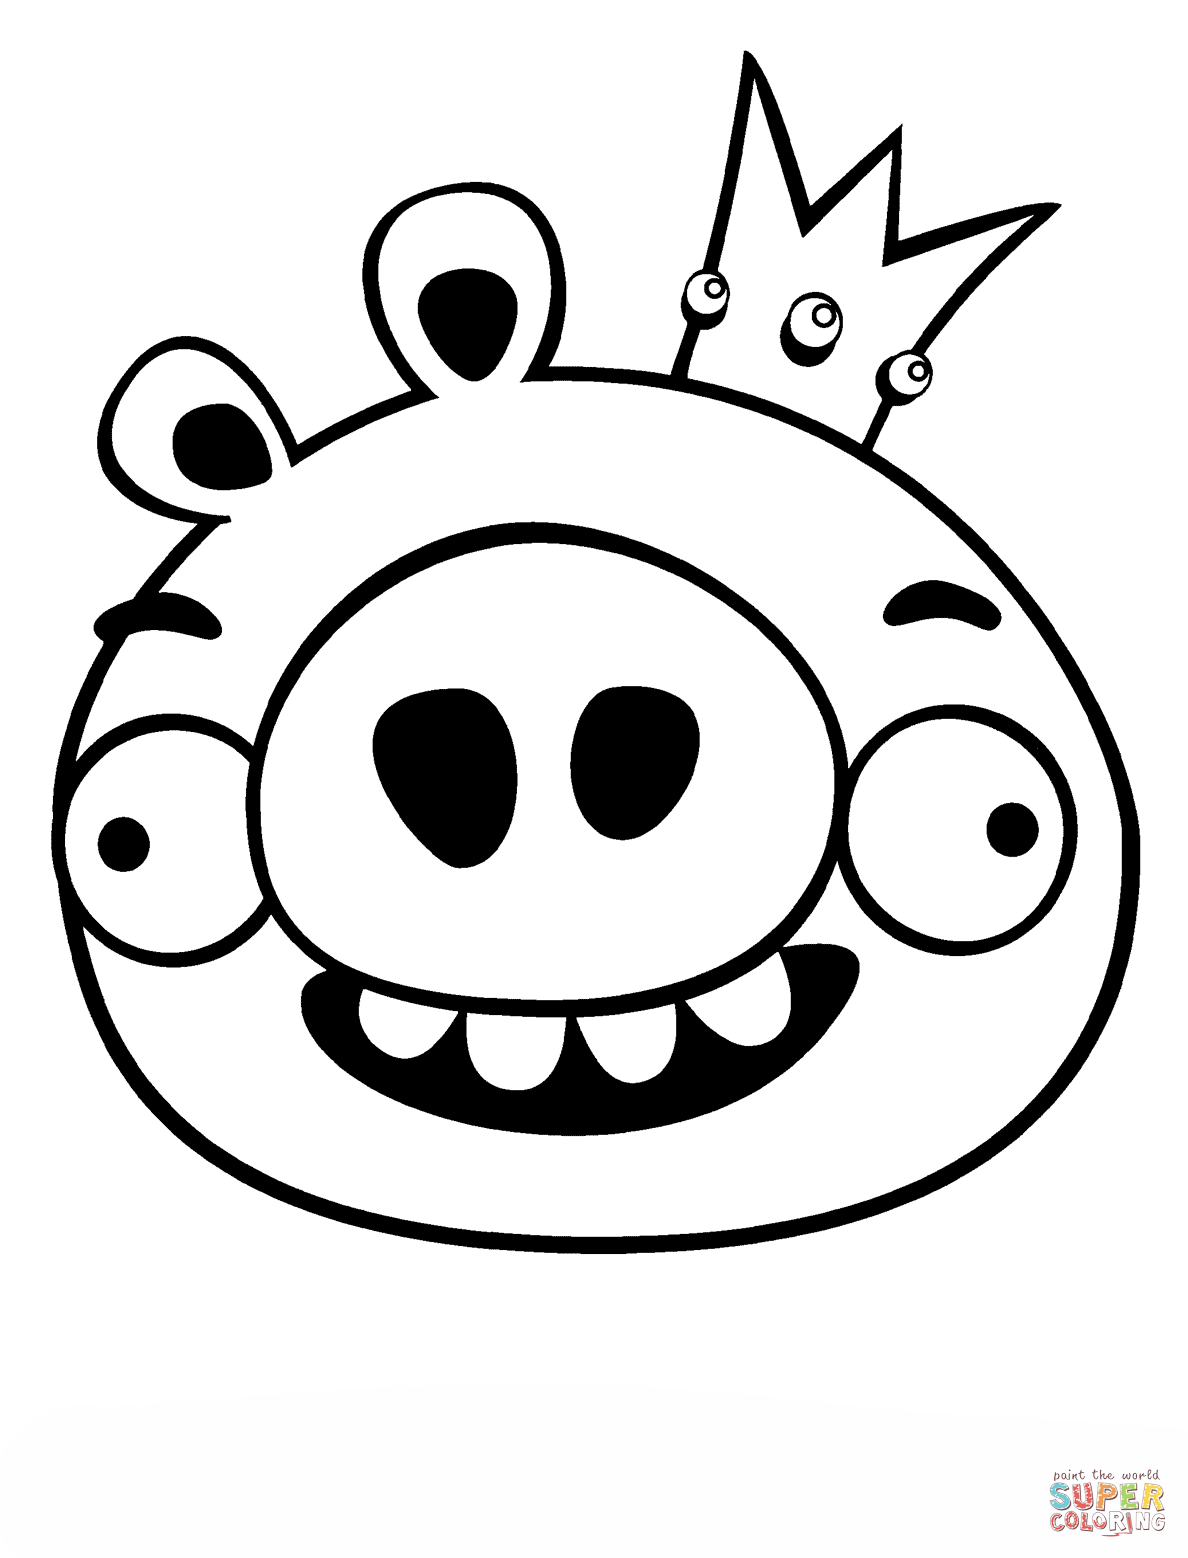 king pig coloring page king pig with helmet pig coloring play free coloring king coloring page pig